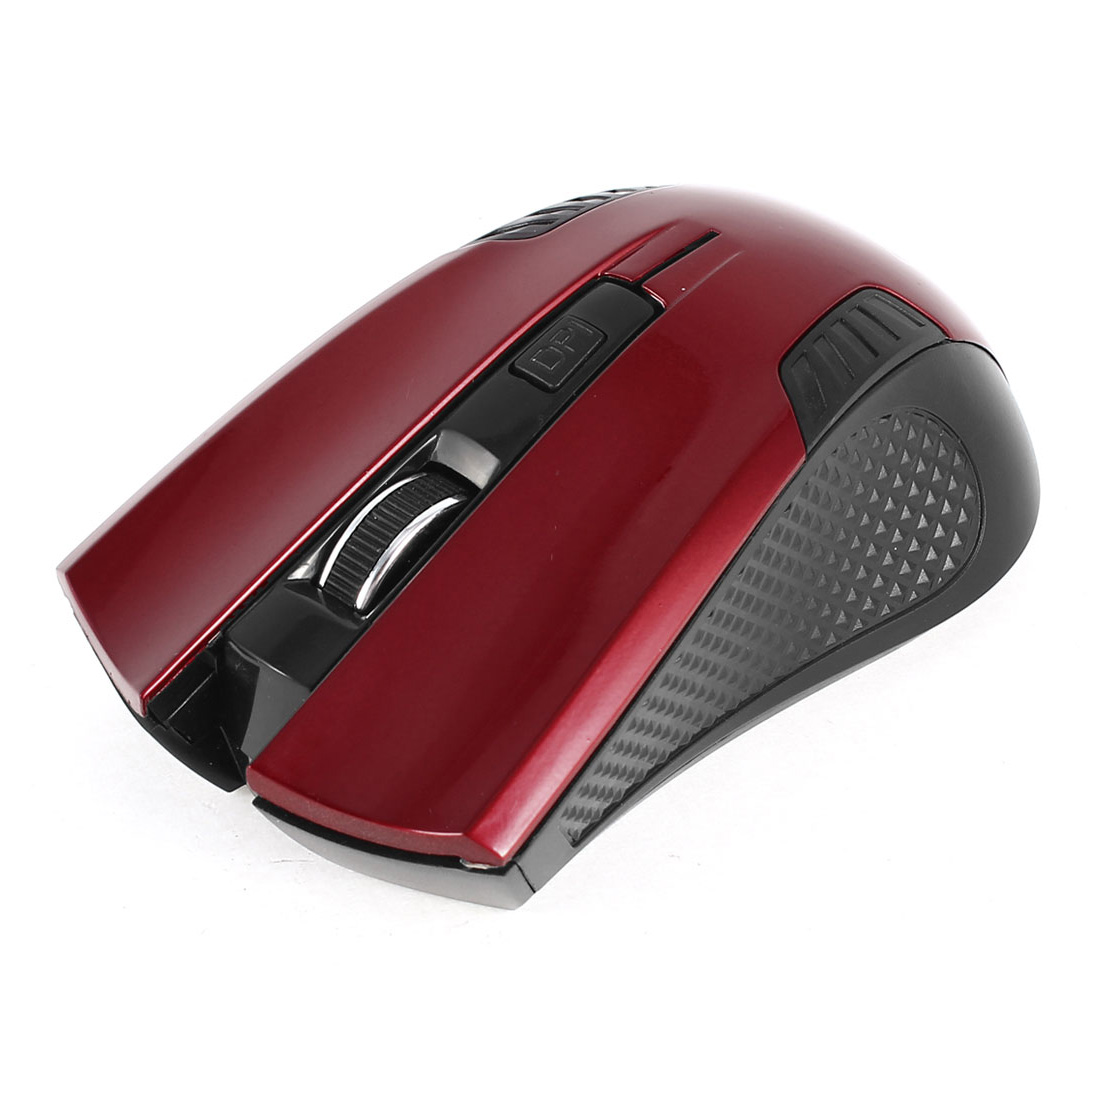 Red Black Rechargeable 1600DPI Wireless bluetooth Optical Mouse for PC Computer Laptop